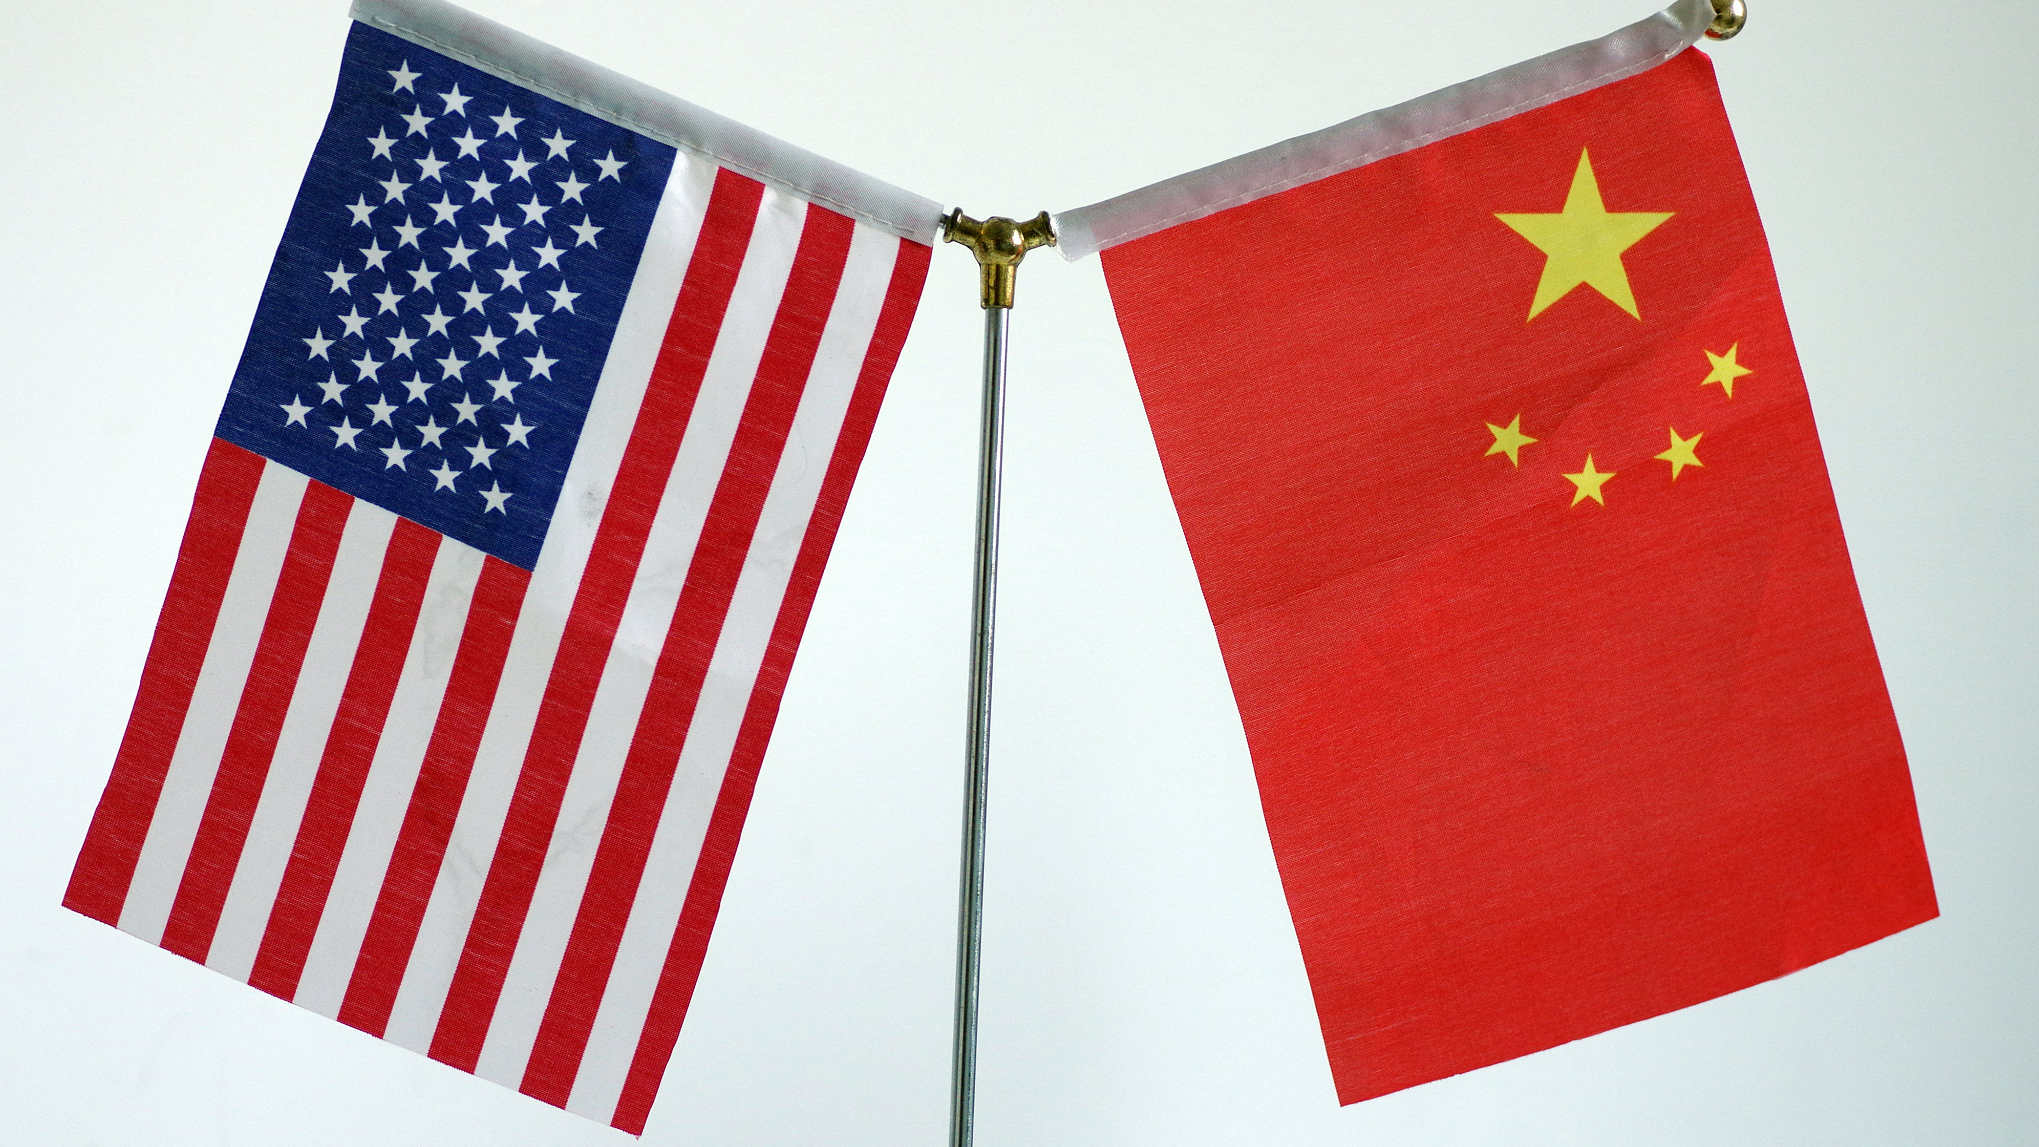 China says relevant US defense act clauses blatantly interfered in its domestic affairs